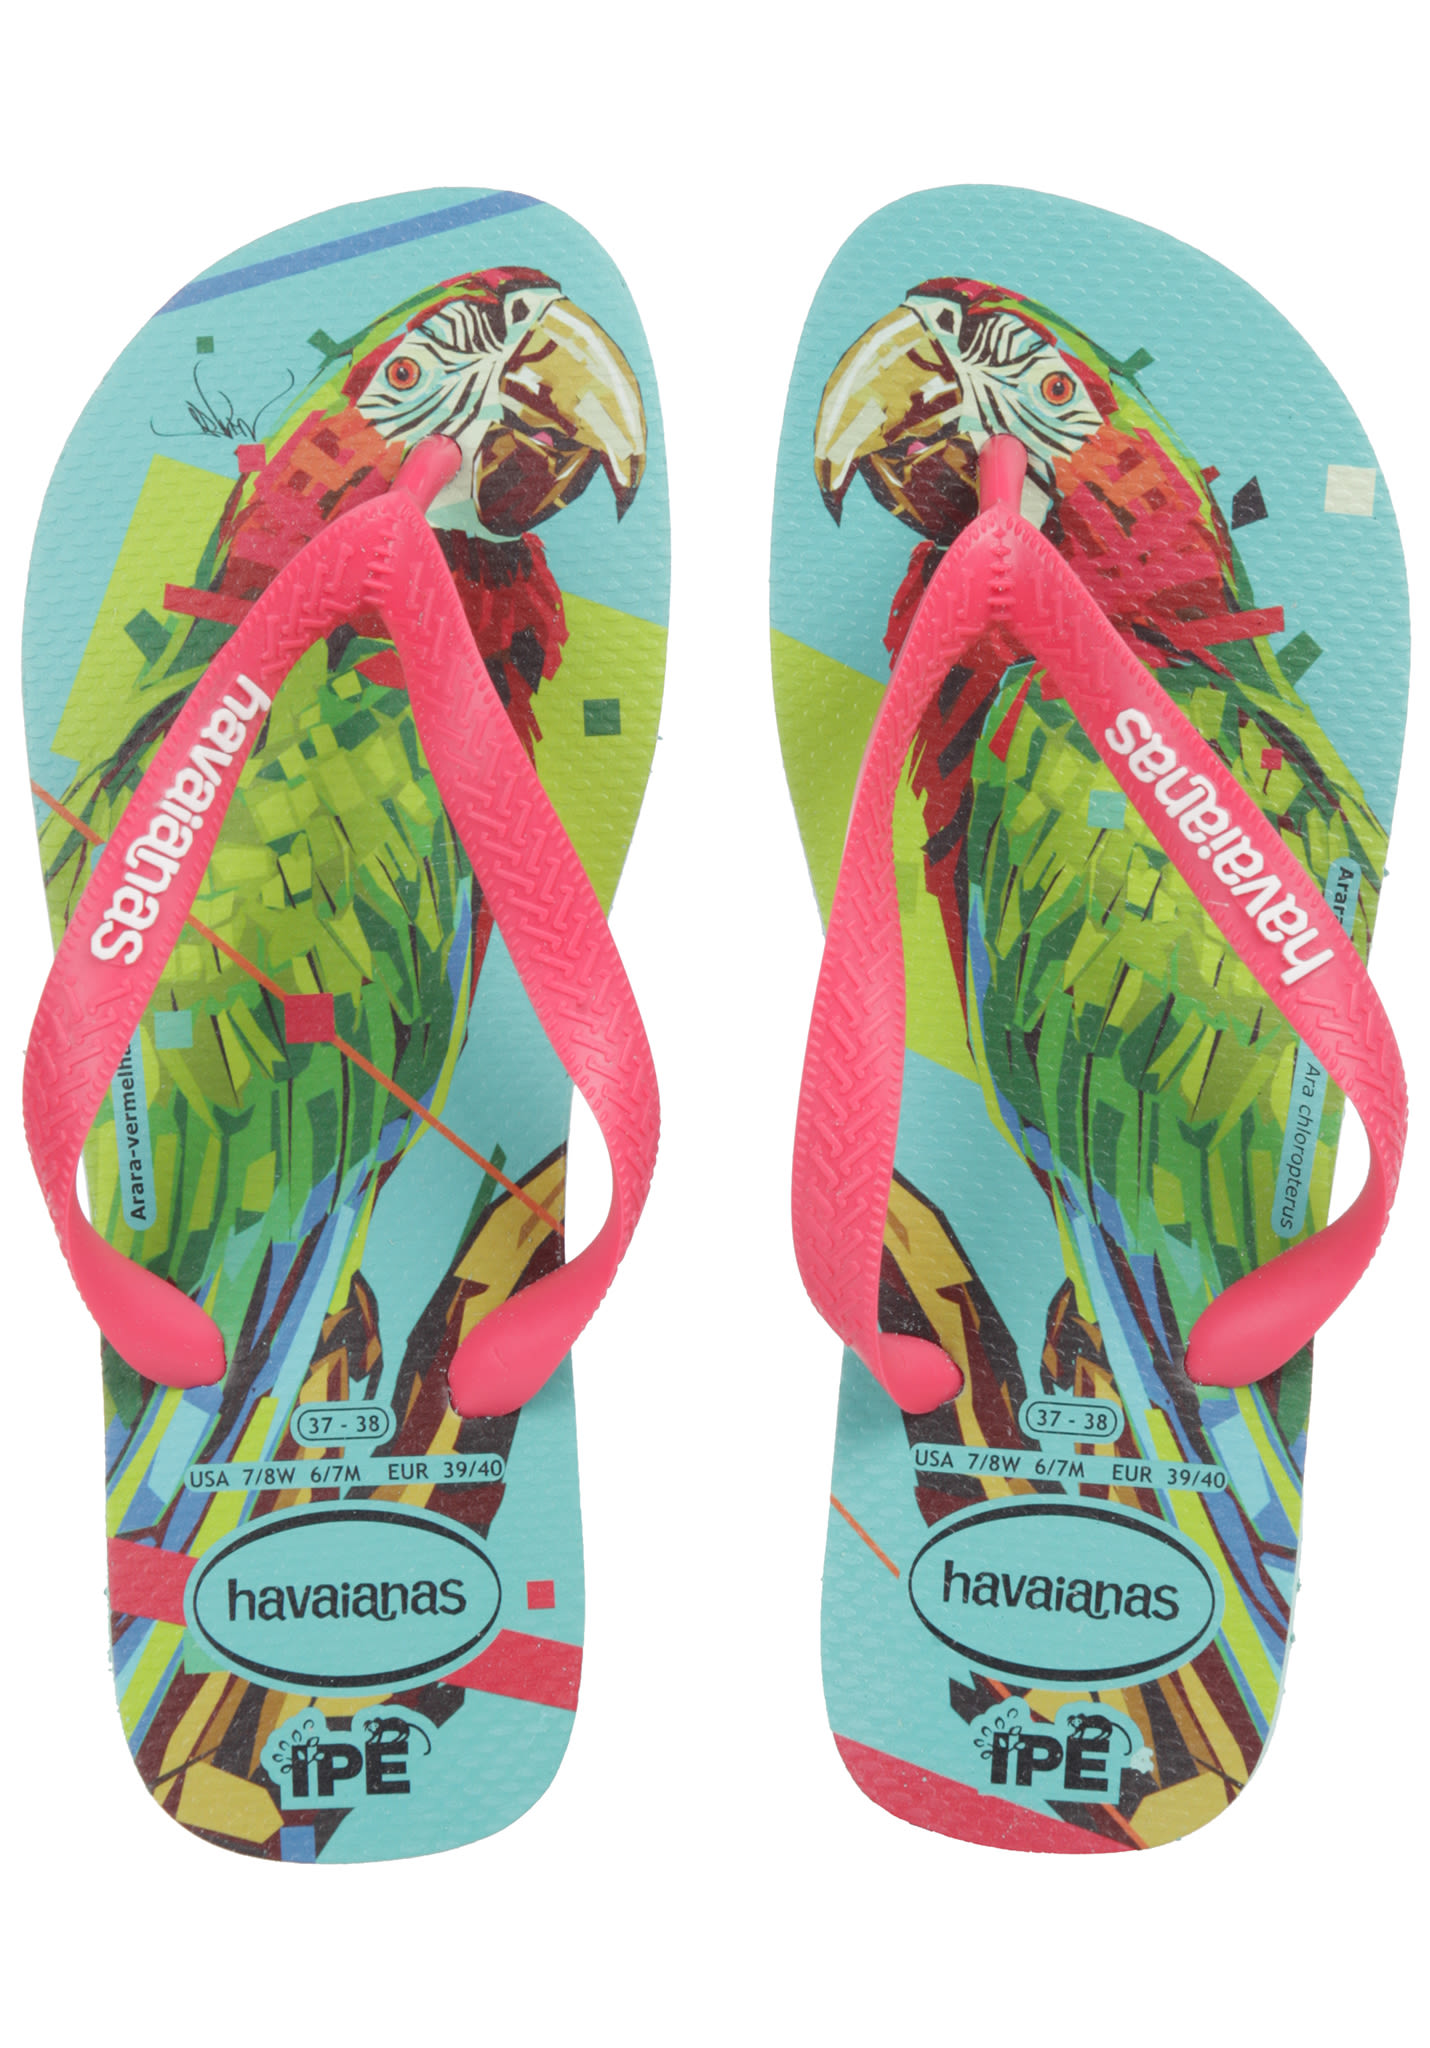 b92c51134550 HAVAIANAS Ipe - Sandals - Blue - Planet Sports